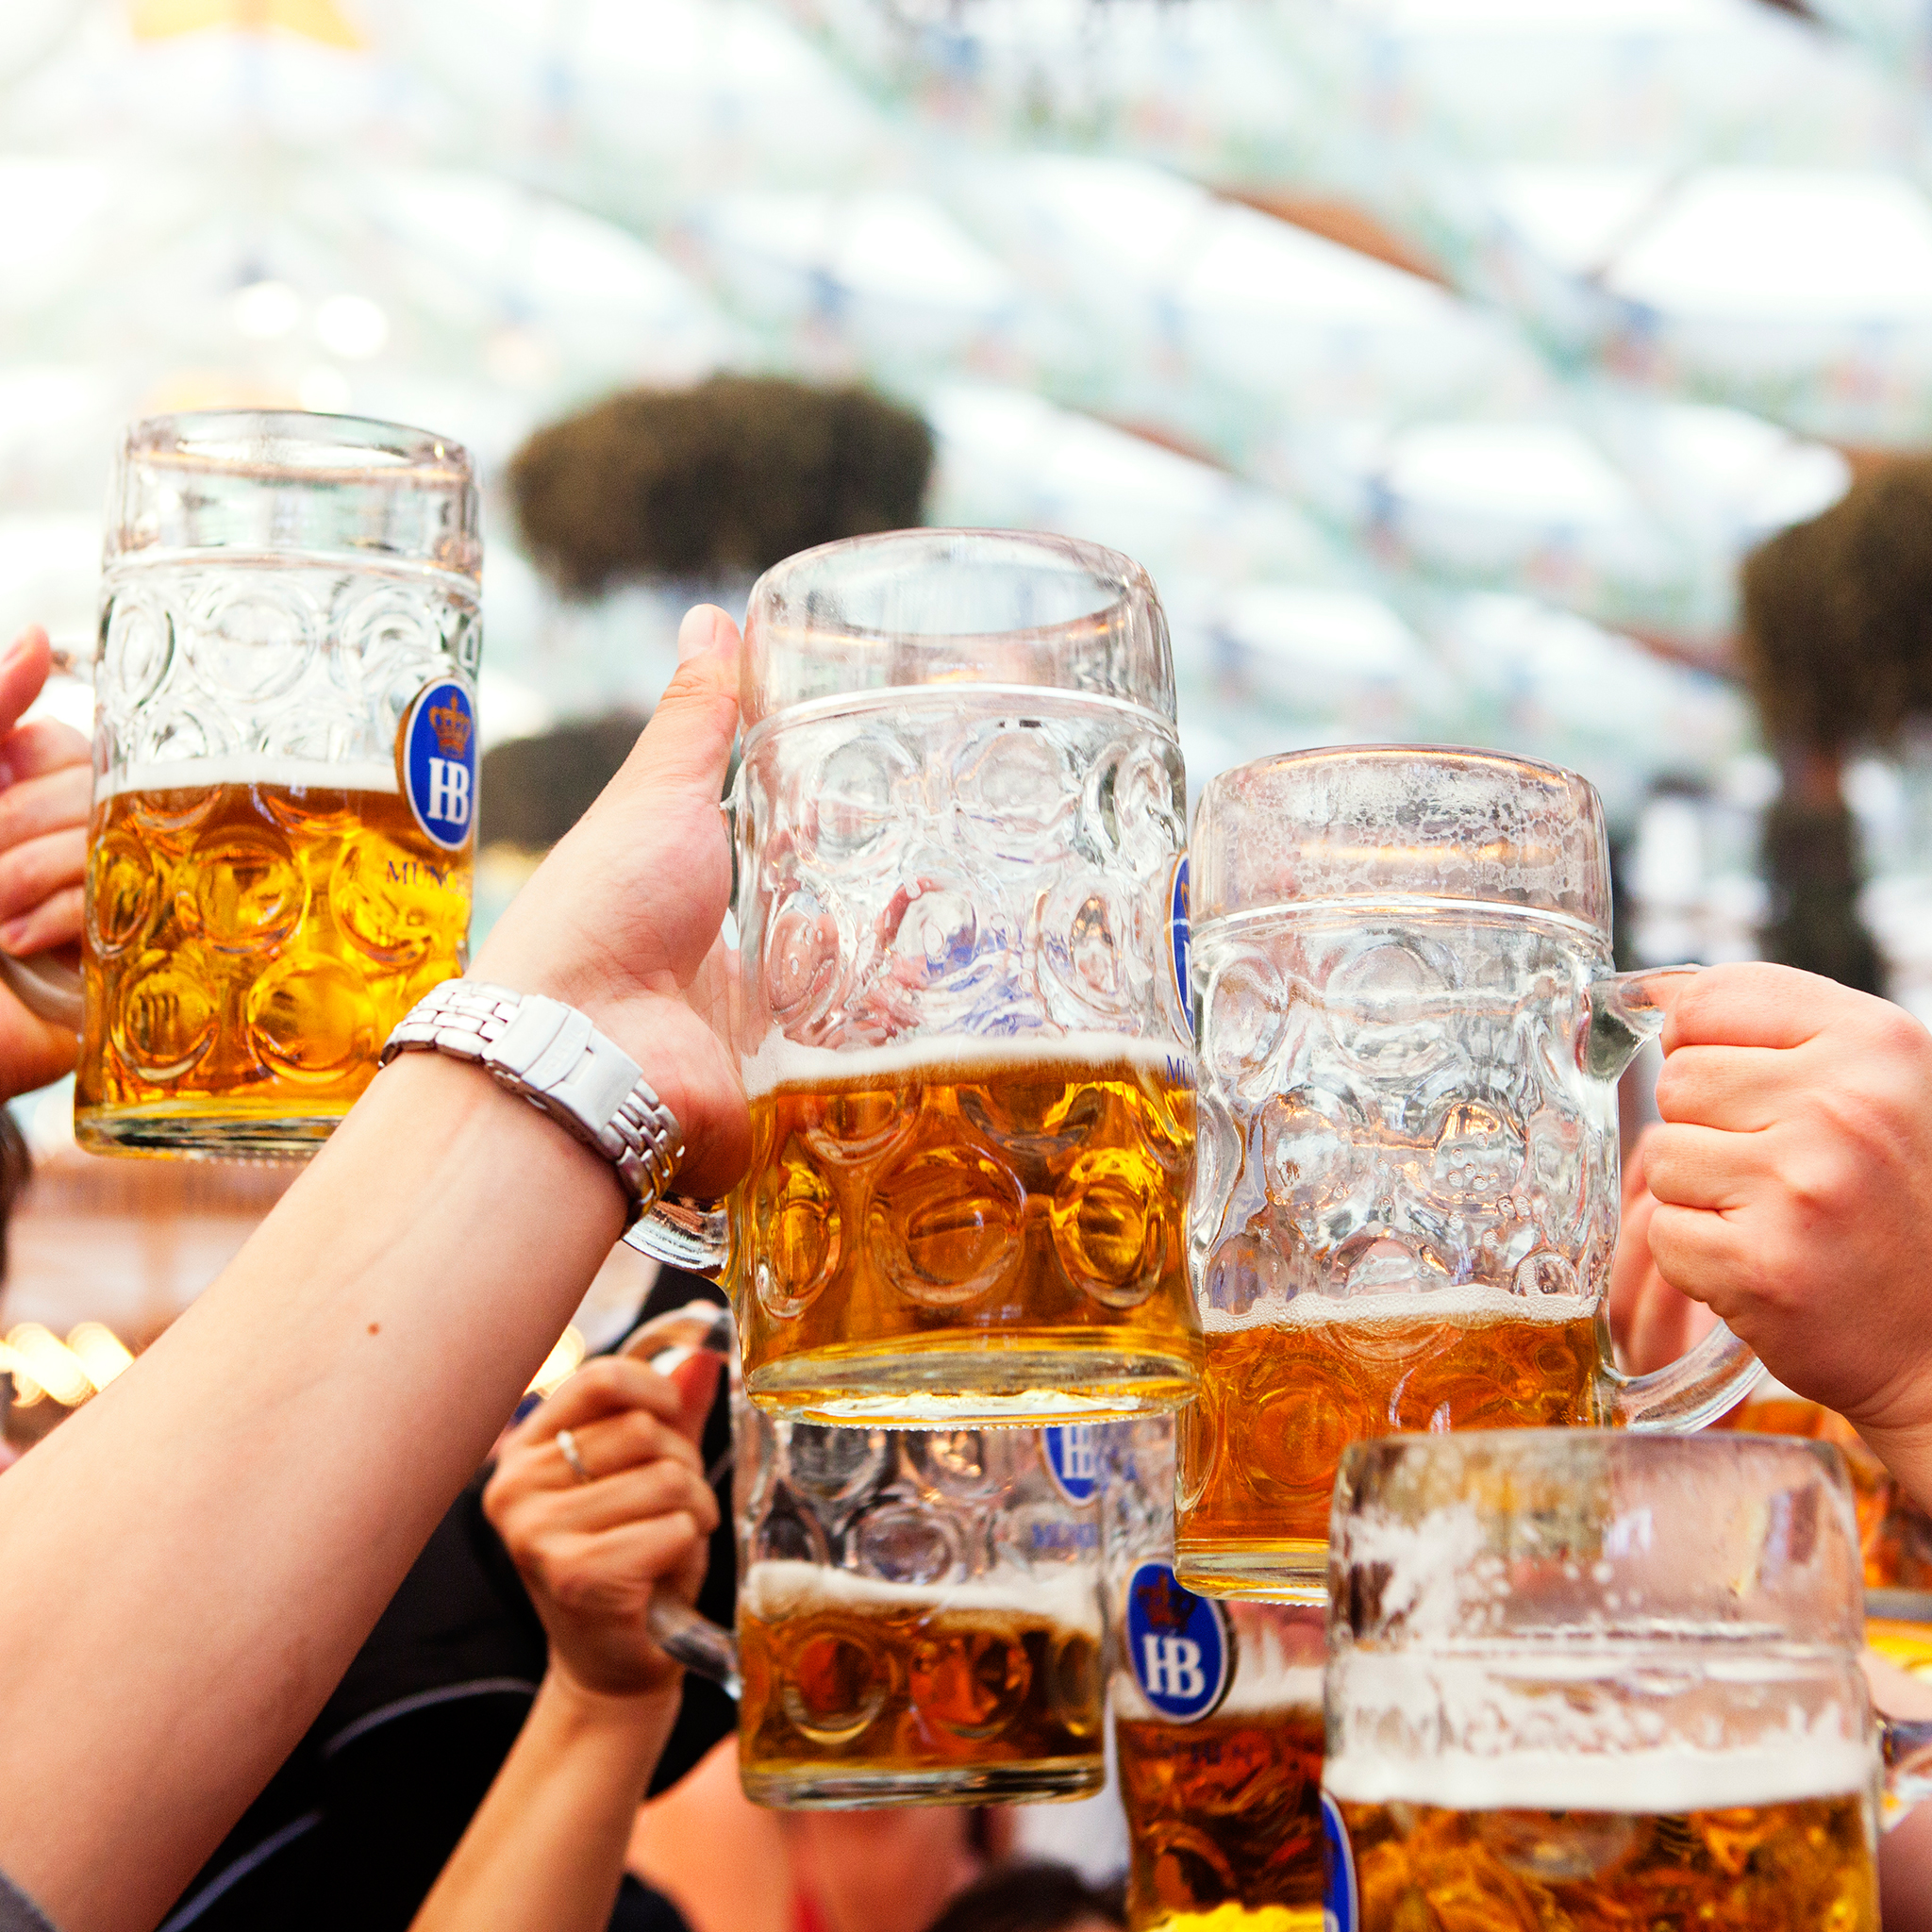 German Beers Found to Contain Traces of Weedkiller